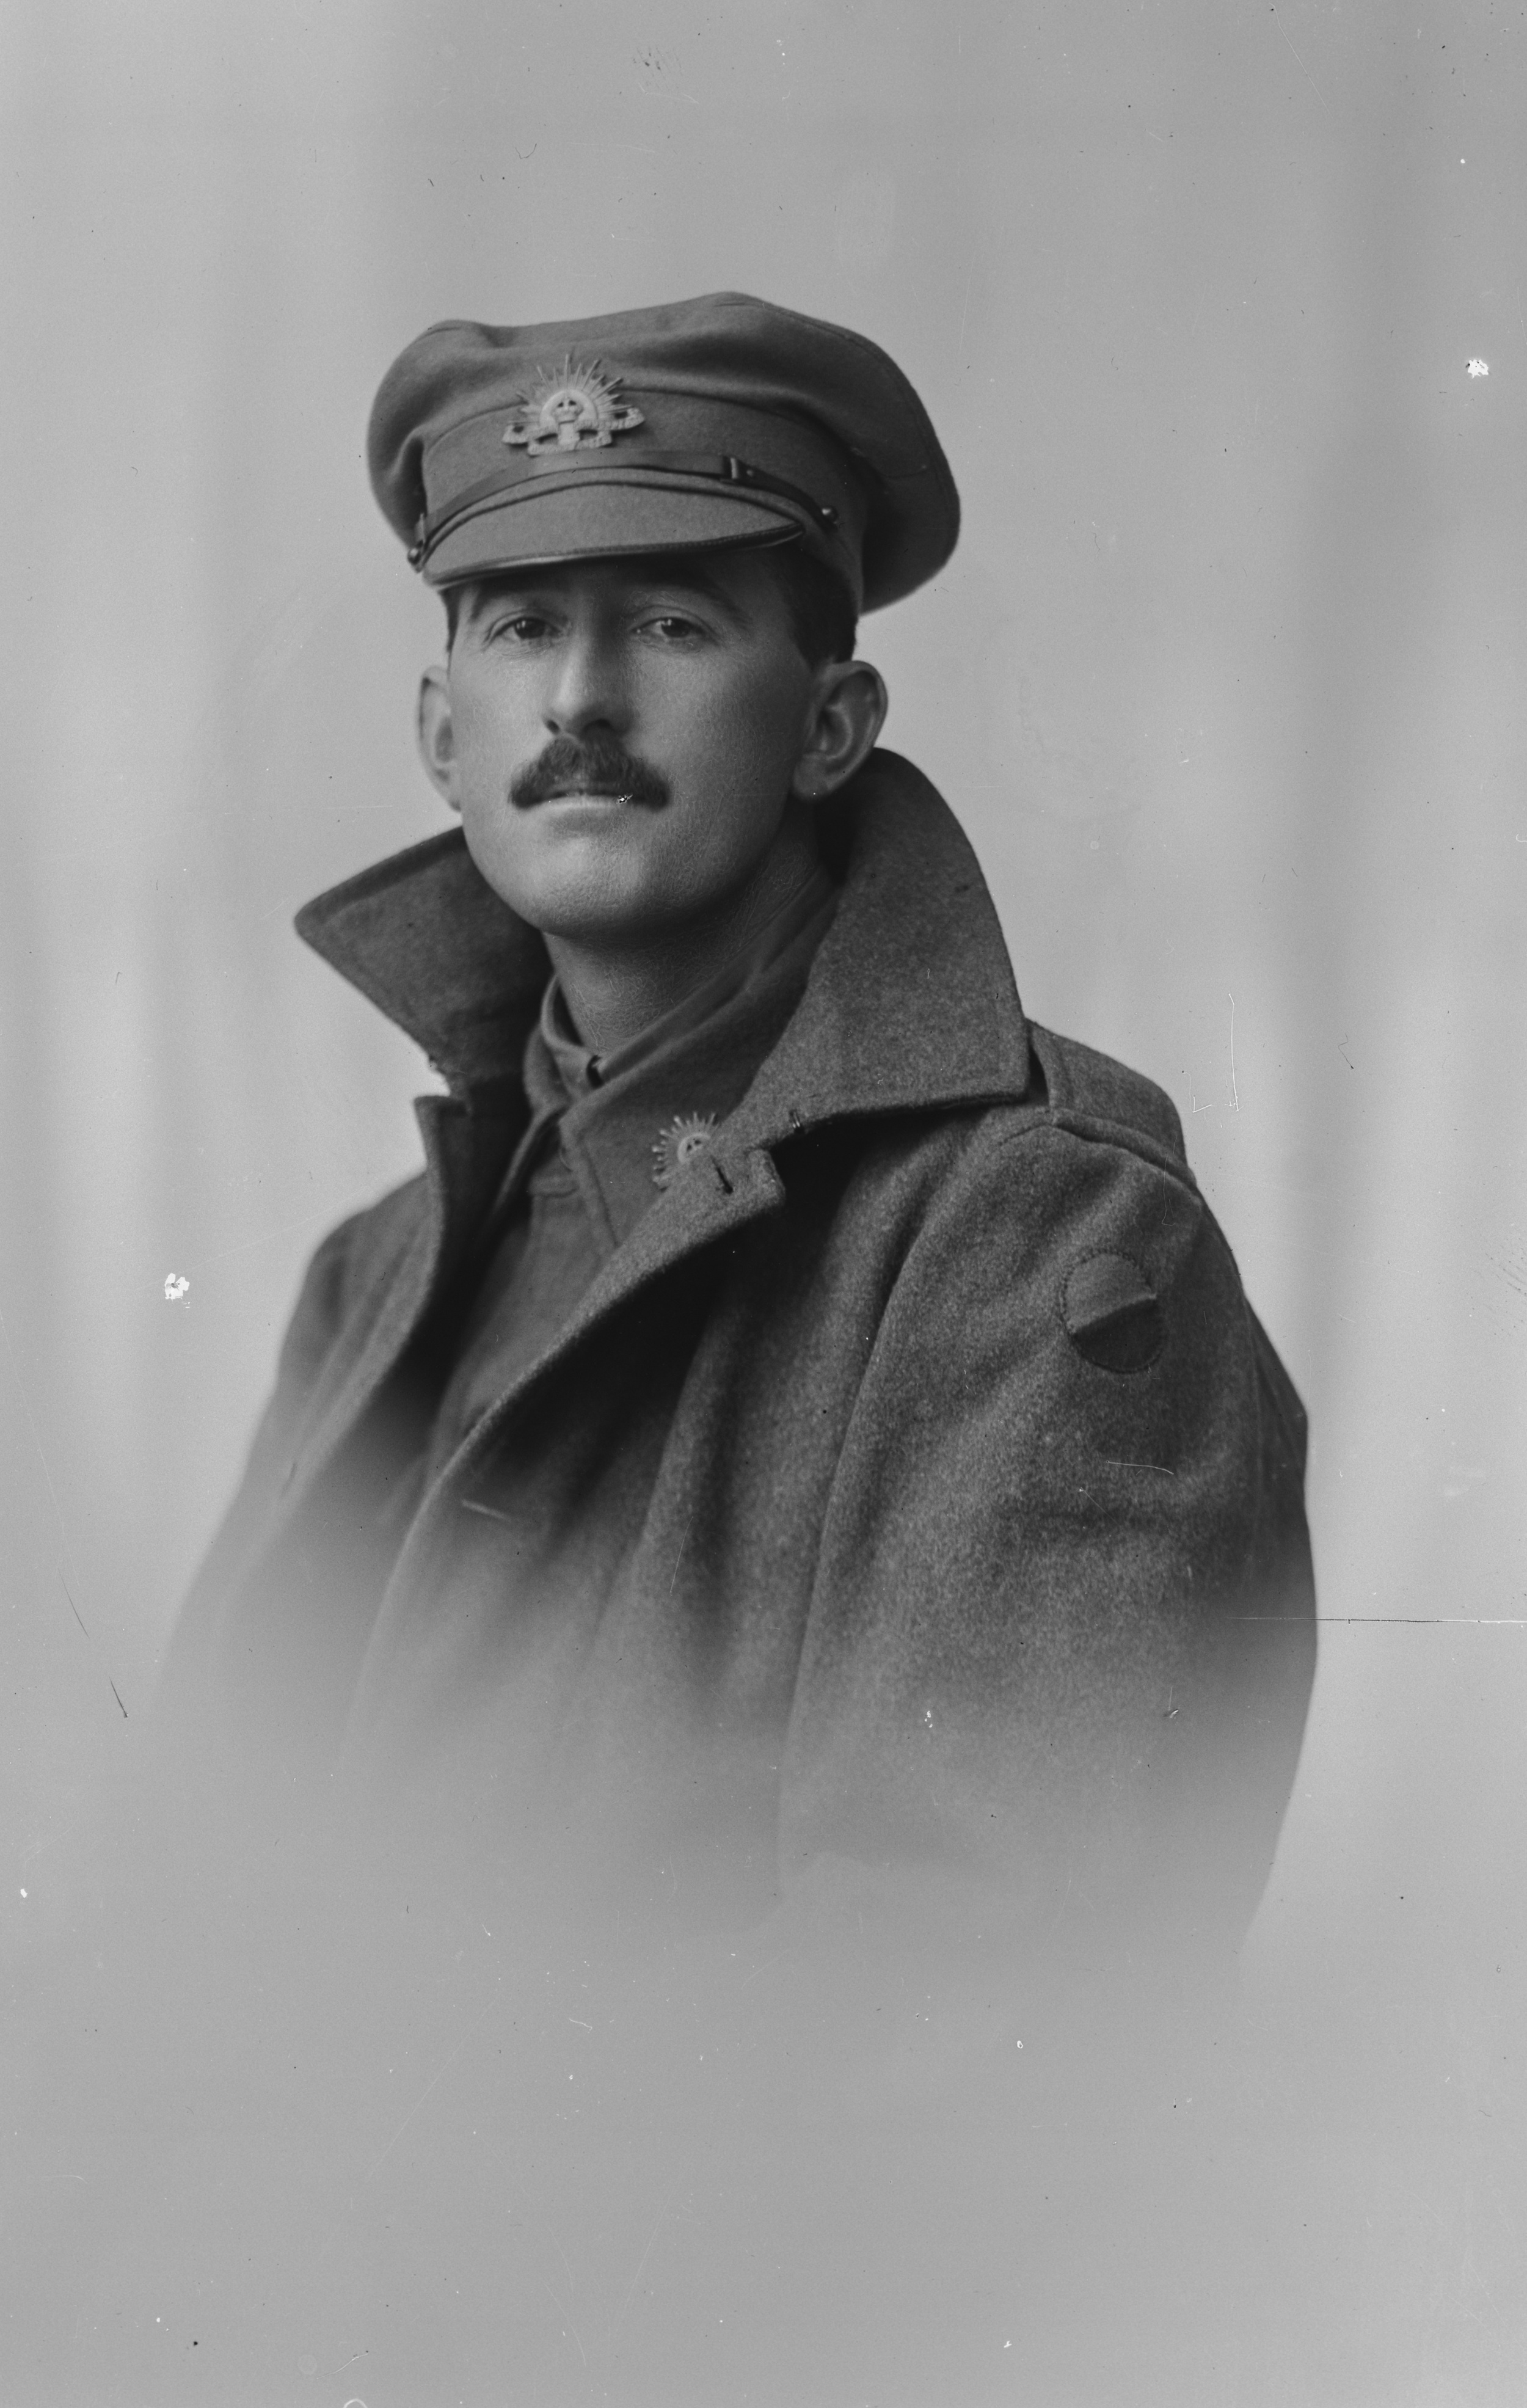 Photographed at the Dease Studio, 117 Barrack Street Perth WA Image courtesy of the State Library of Western Australia: 108534PD